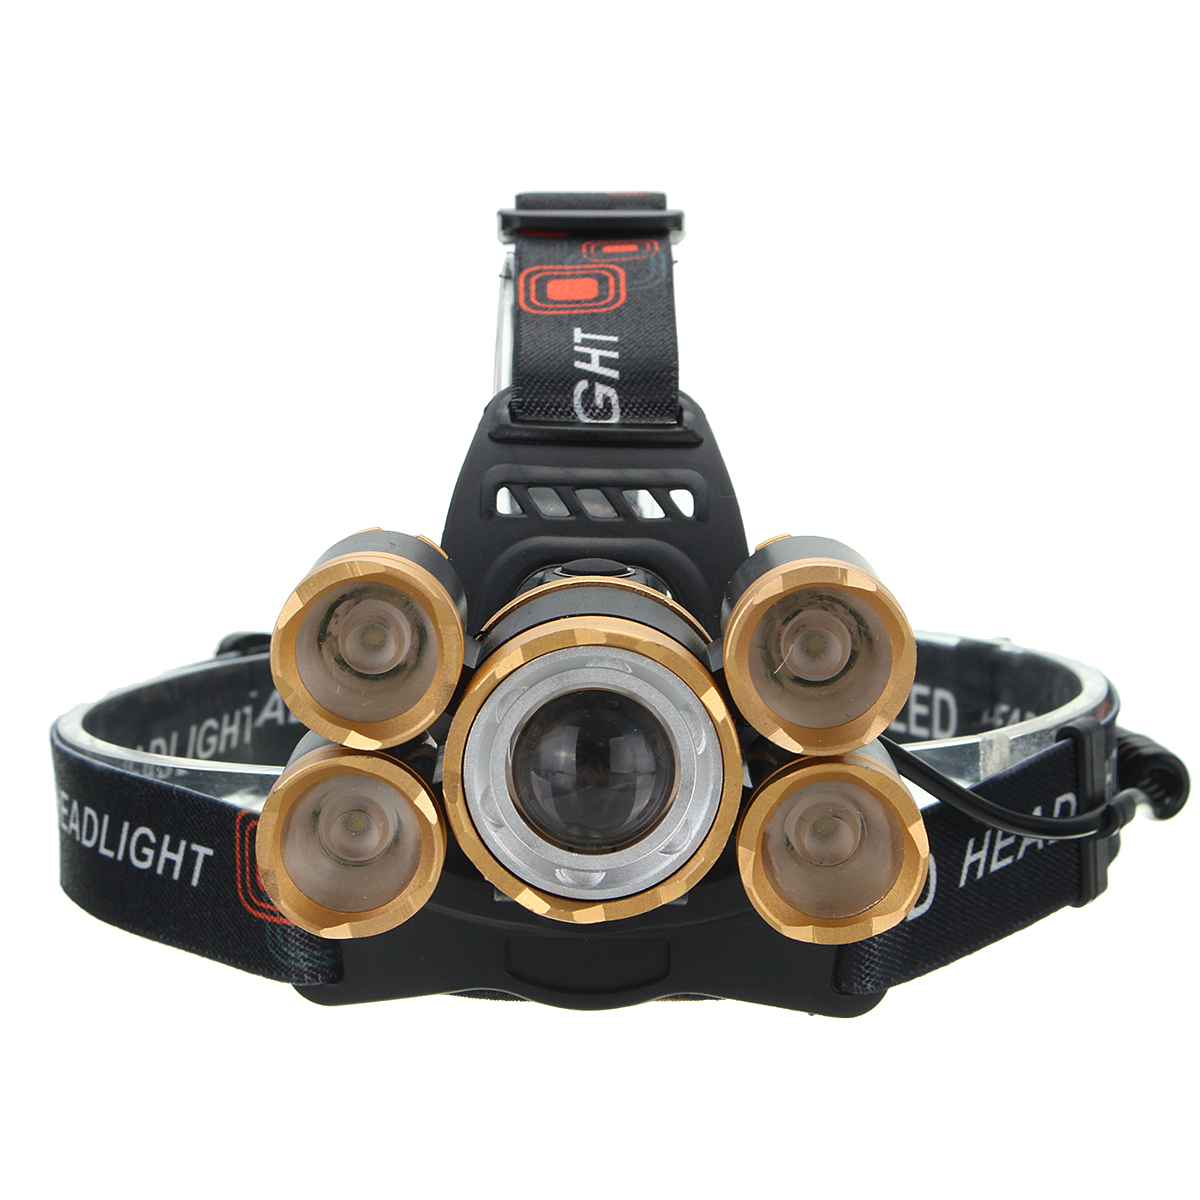 XANES 7310-C 2500 Lumens Bicycle Headlamp 4 Switch Modes T6+ 4 XPE White Light Adjustable